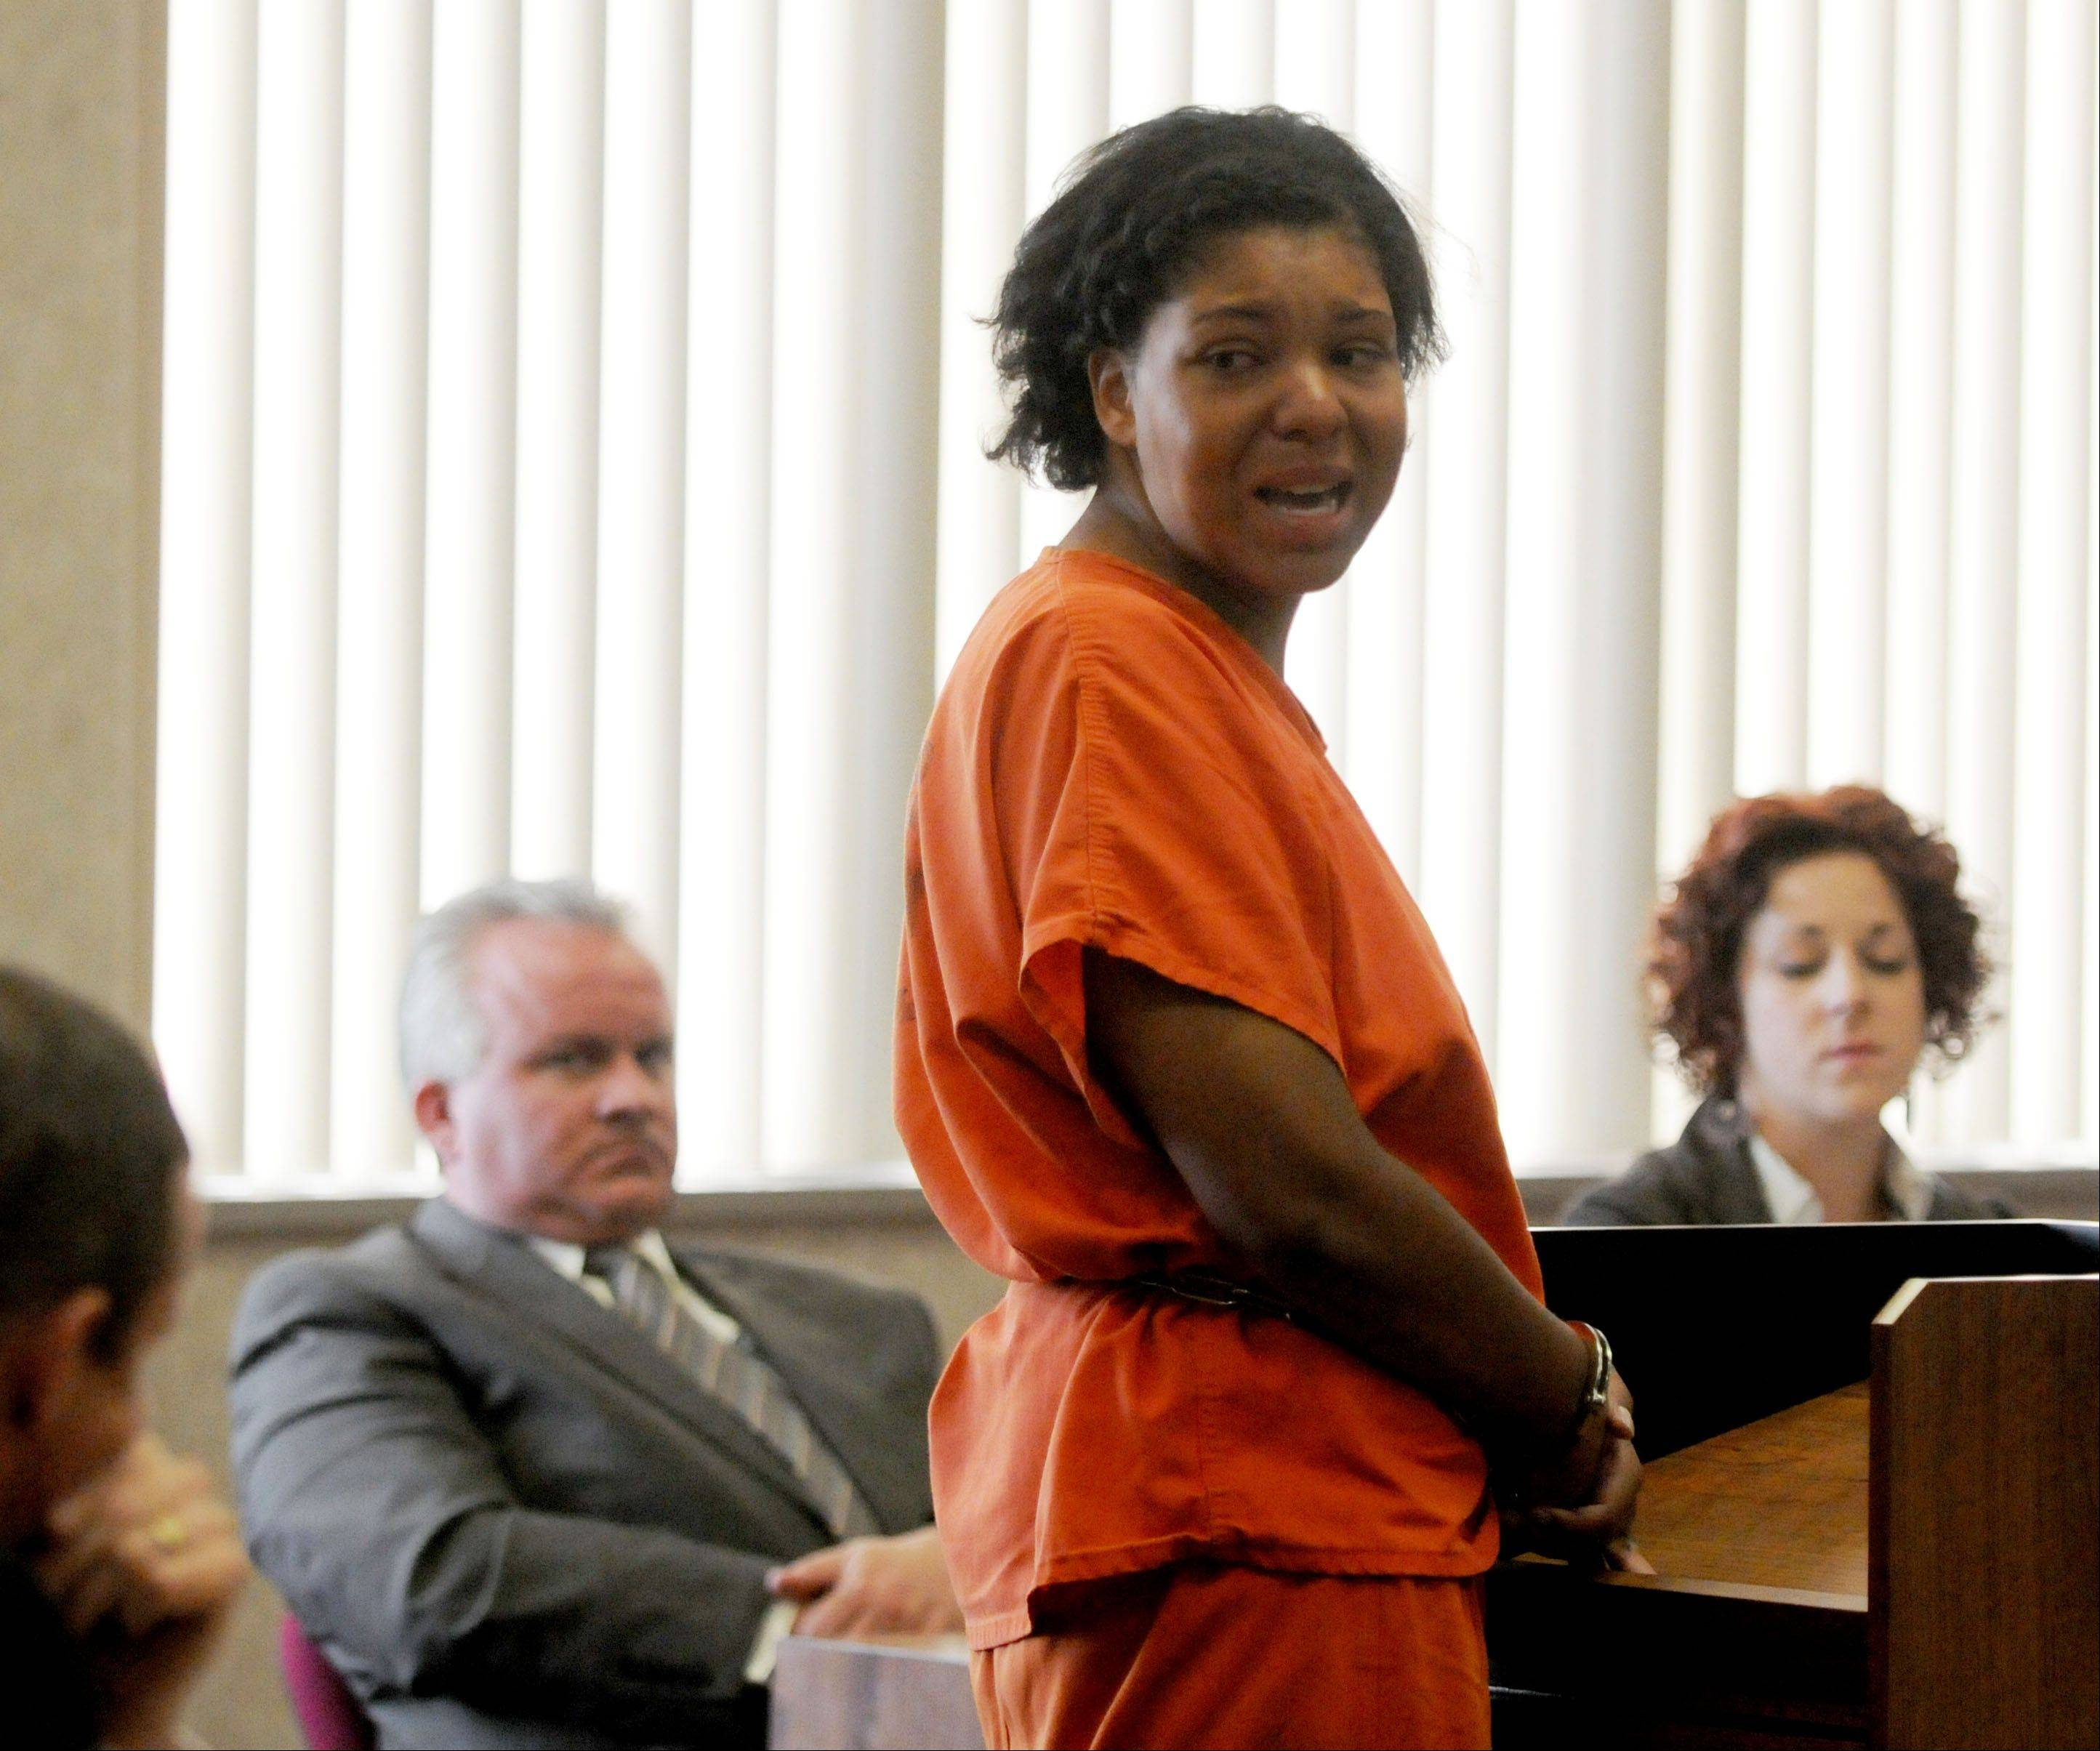 Tia Skinner looks to her family and addresses them during her resentencing hearing in 31st Circuit court in Port Huron, Mich. on Thursday, July 11, 2013. Skinner, who was convicted of plotting to have her father stabbed to death when she was just 17 years old was sentenced again to life in prison without parole.